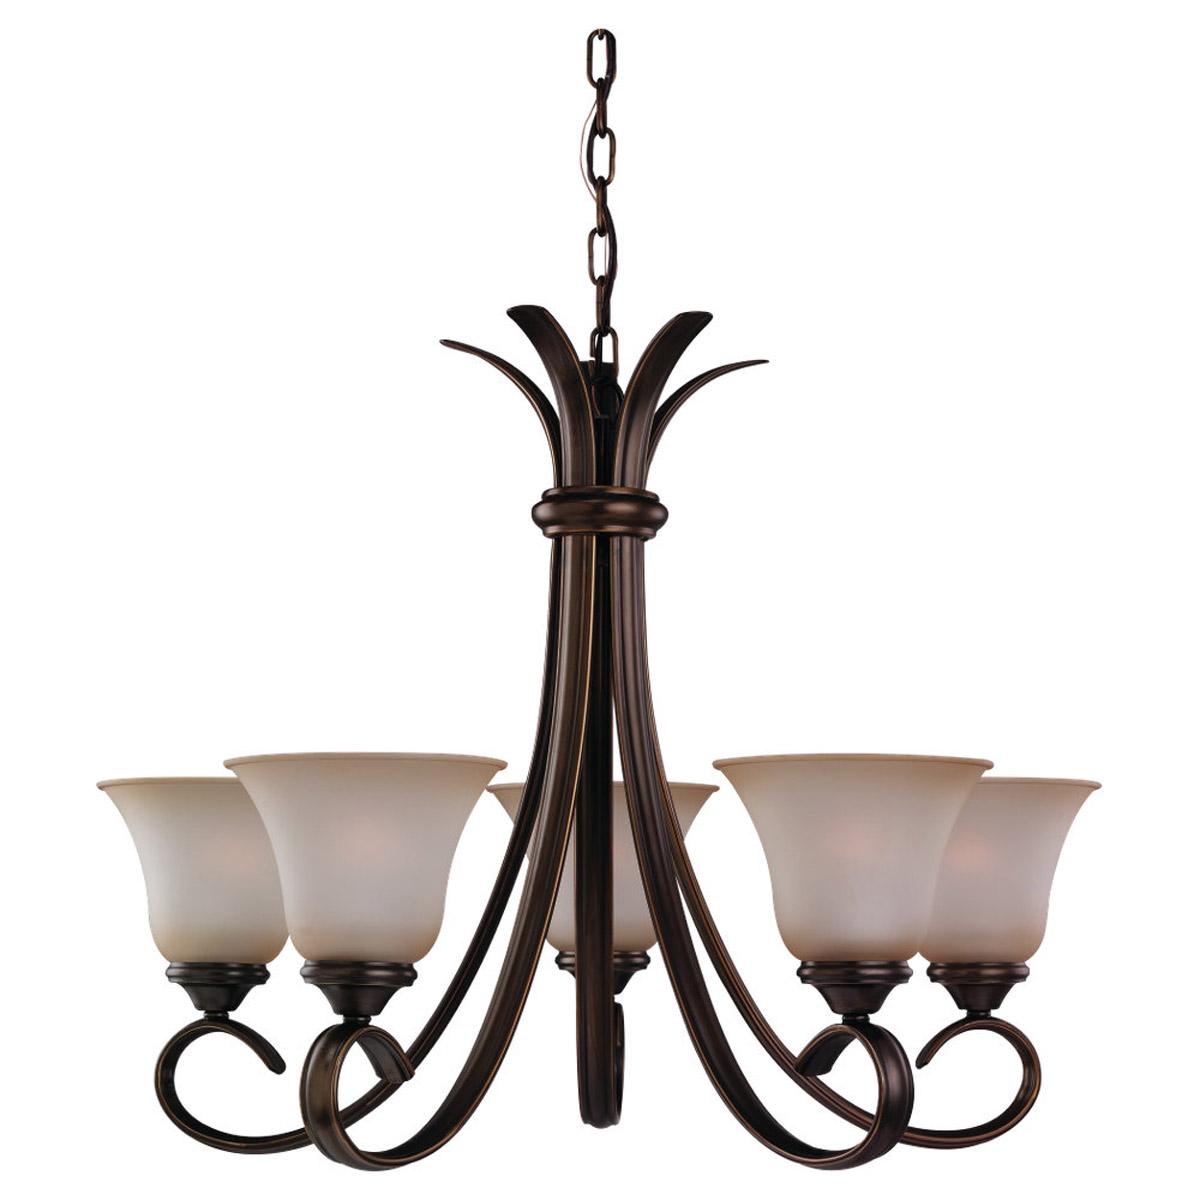 Sea Gull Lighting Rialto 5 Light Chandelier in Russet Bronze 31361-829